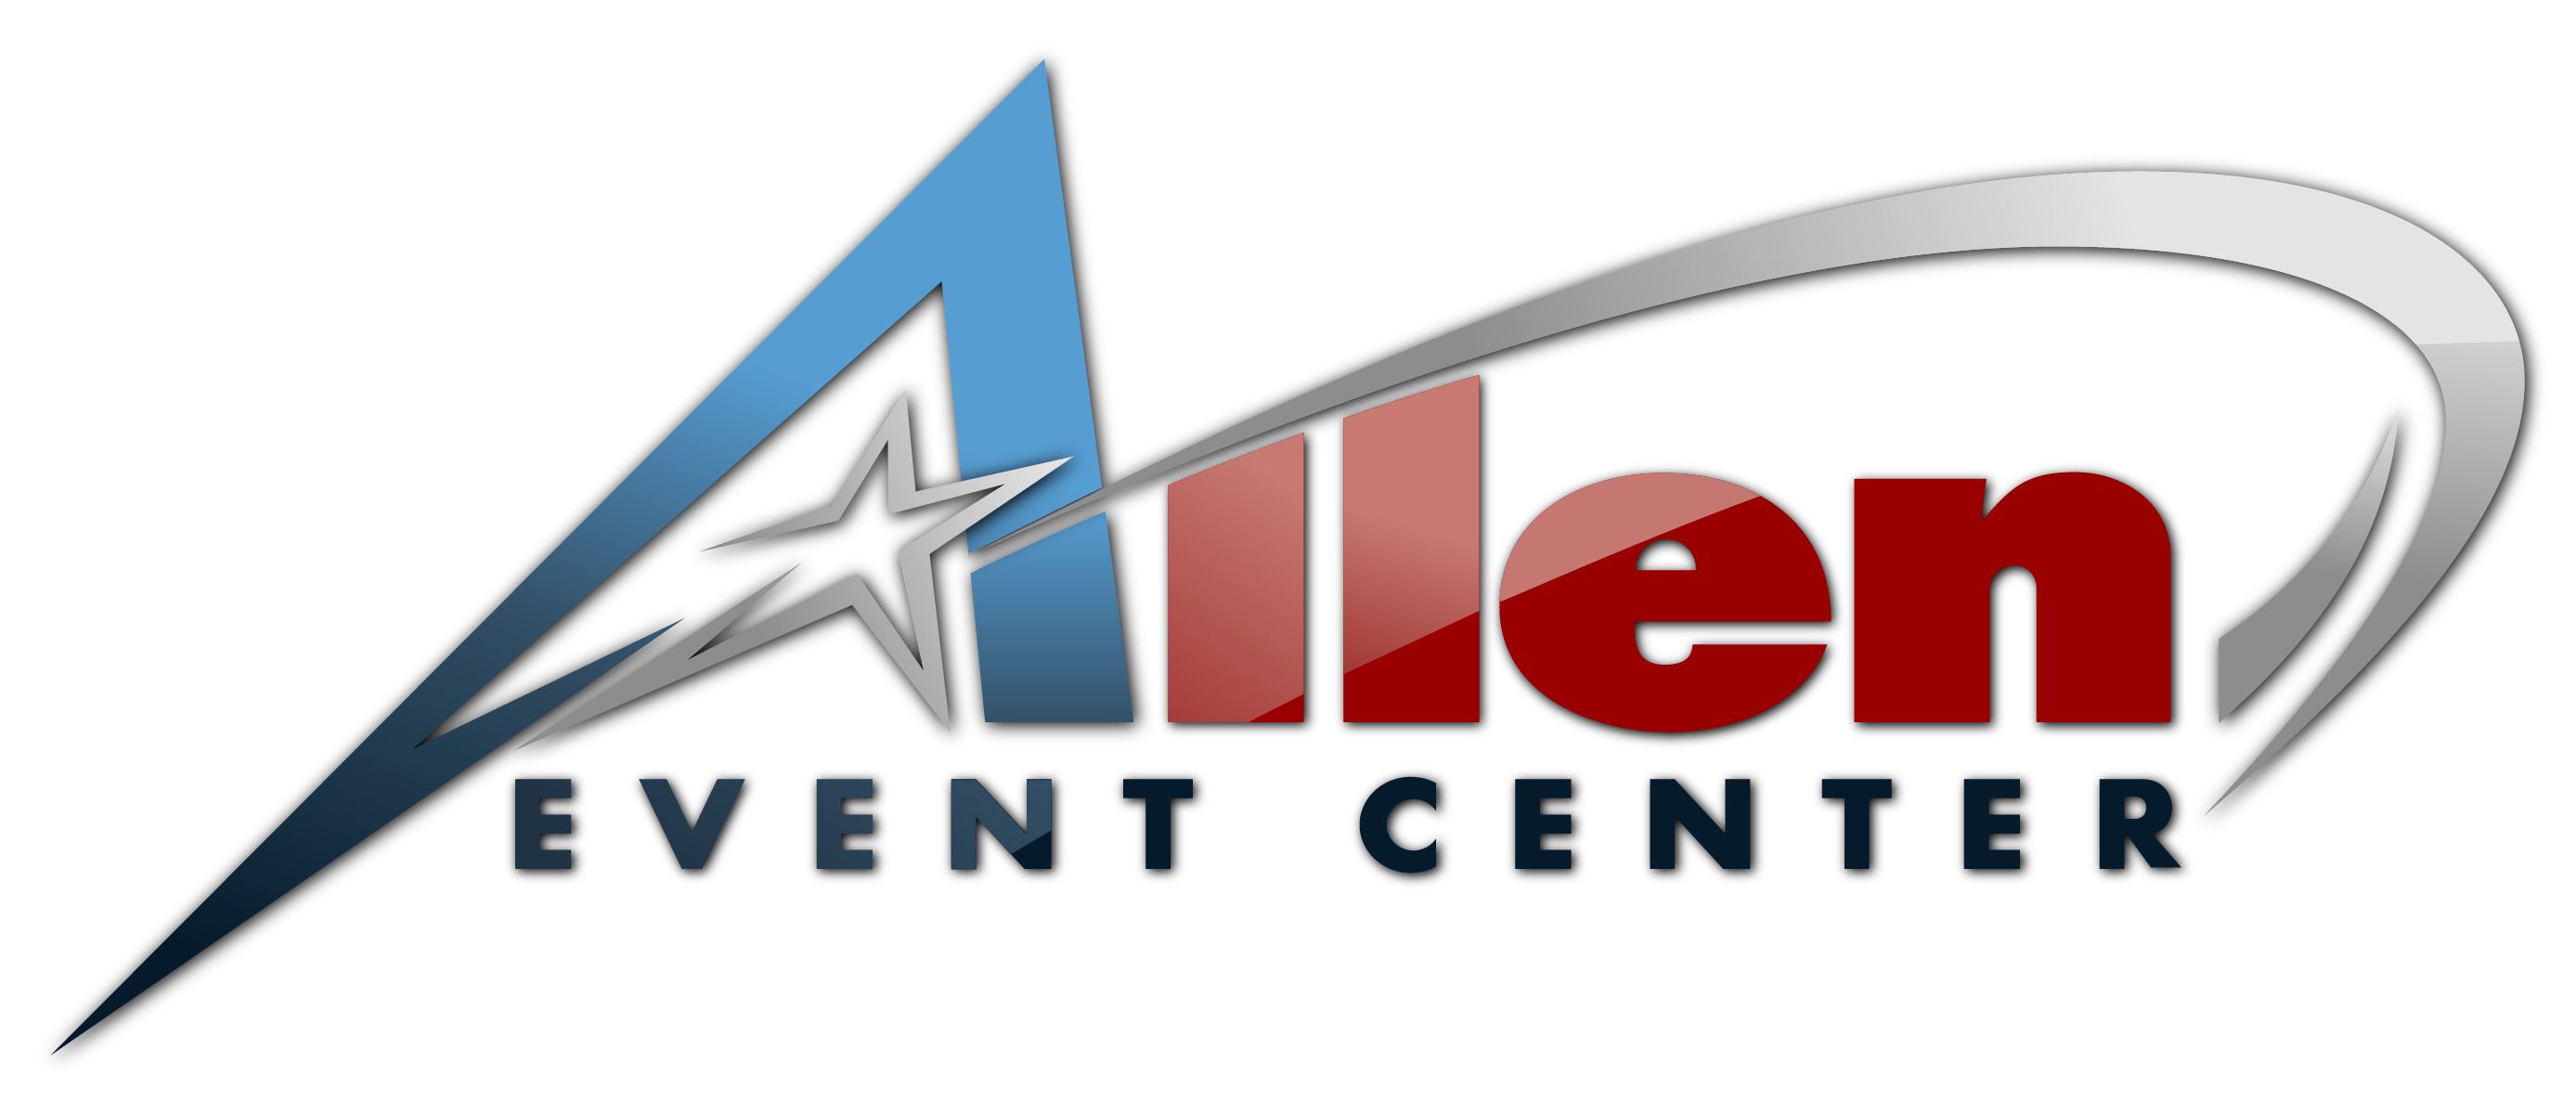 New Allen Event Center logo.png